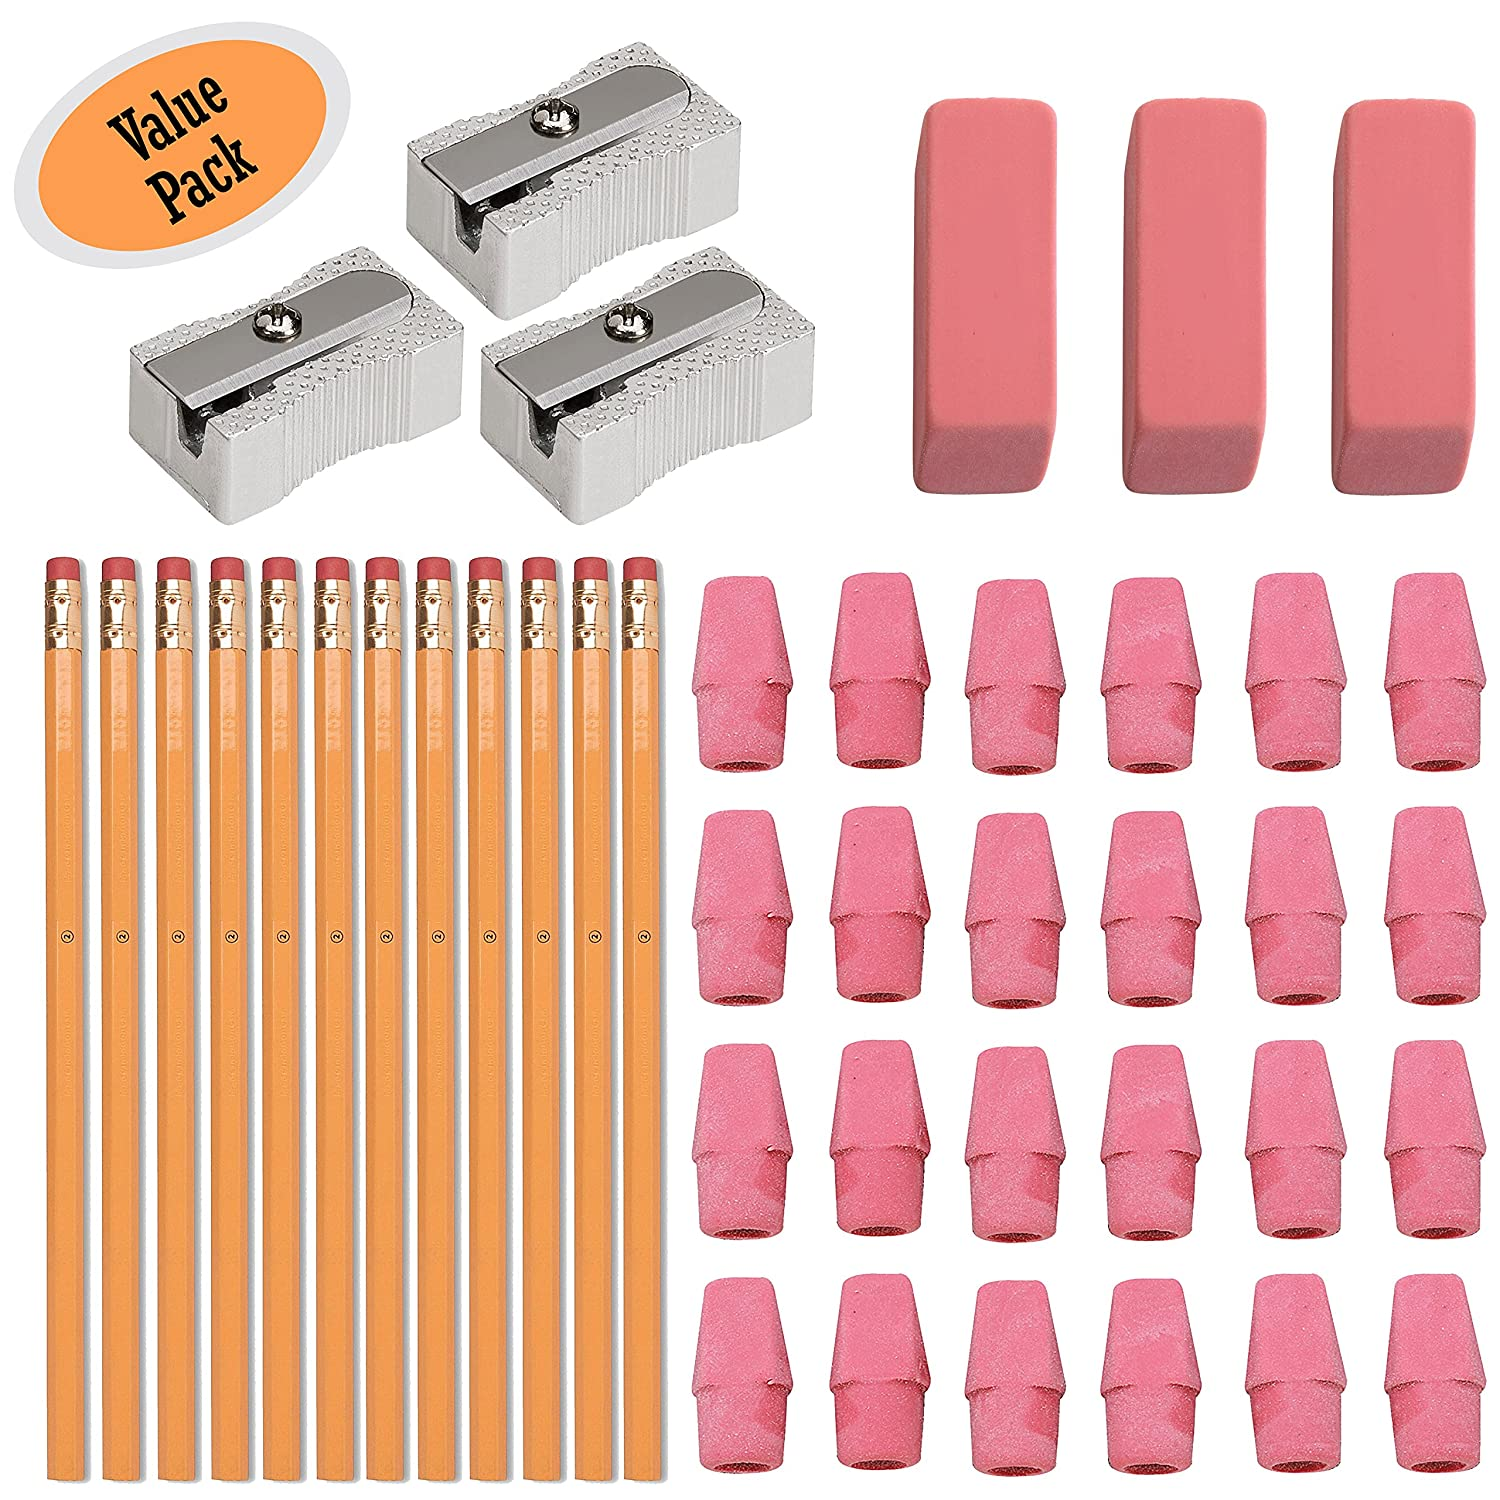 #2 HB Pencils, Wood-cased Pencils With Eraser Tops, 12 Pack - With 24 Pink Cap Erasers - With 3 Large Erasers - 100% Latex Free - With 3 Metal Pencil Sharpener - Value Pack Klingy